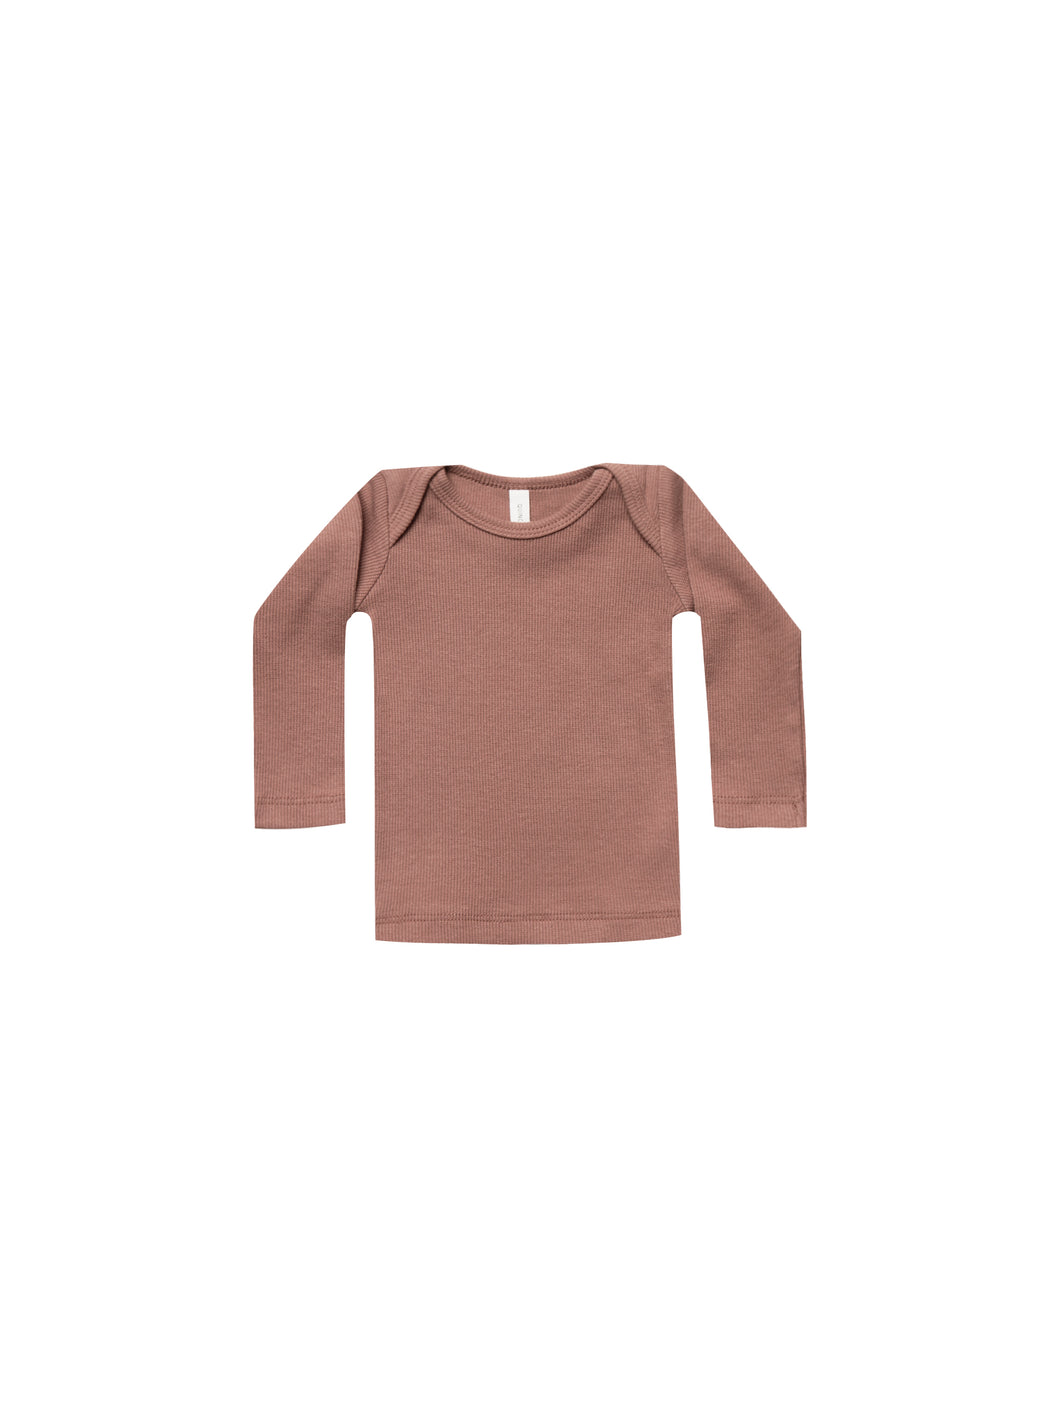 Ribbed Lap Tee - Clay (LAST ONE 0-3m)